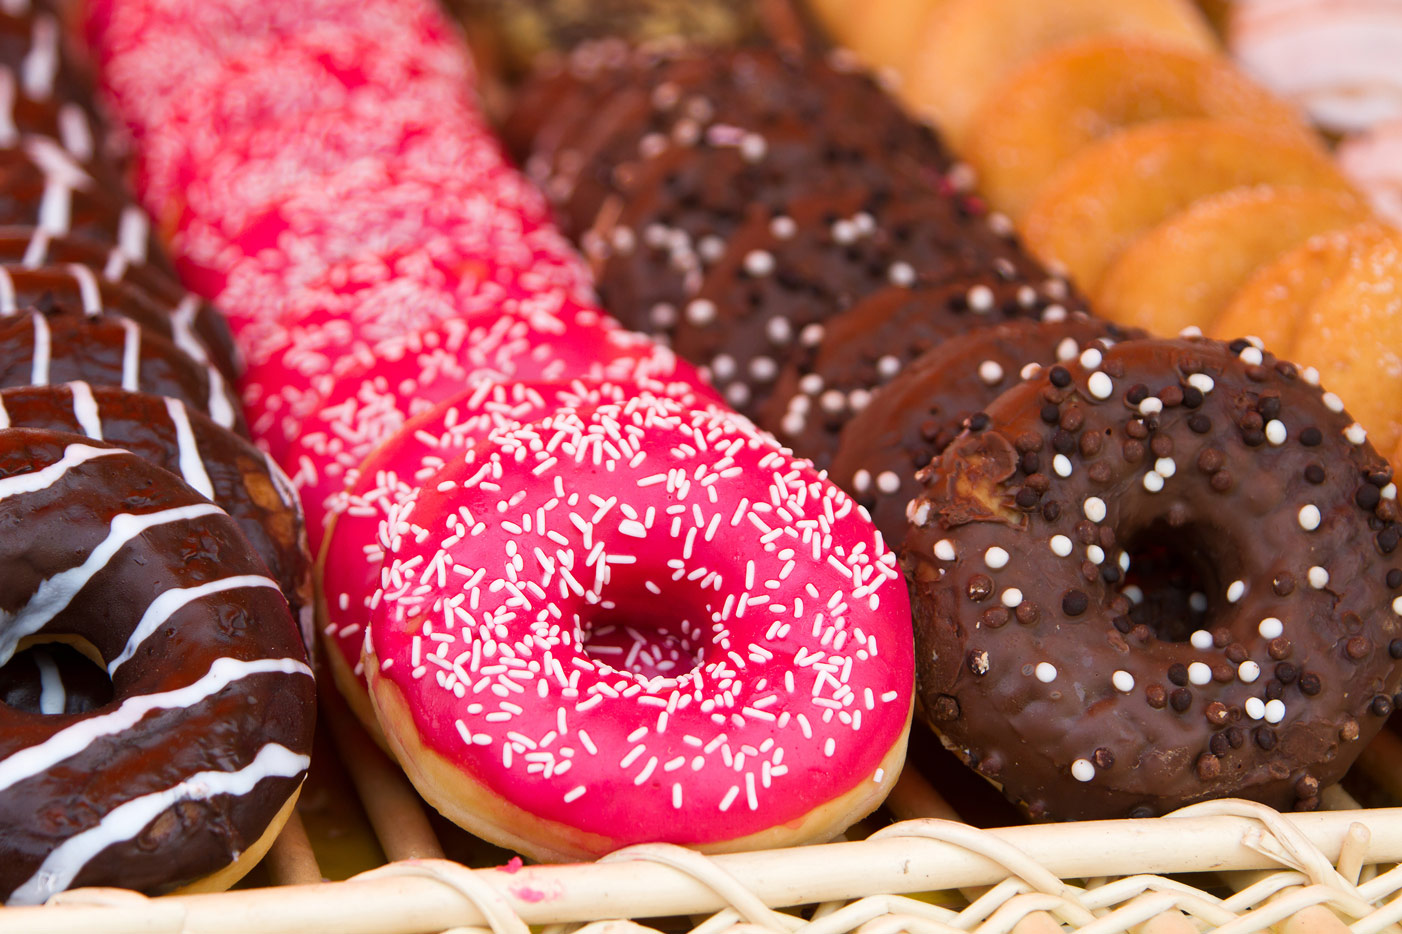 assorted doughnuts donuts